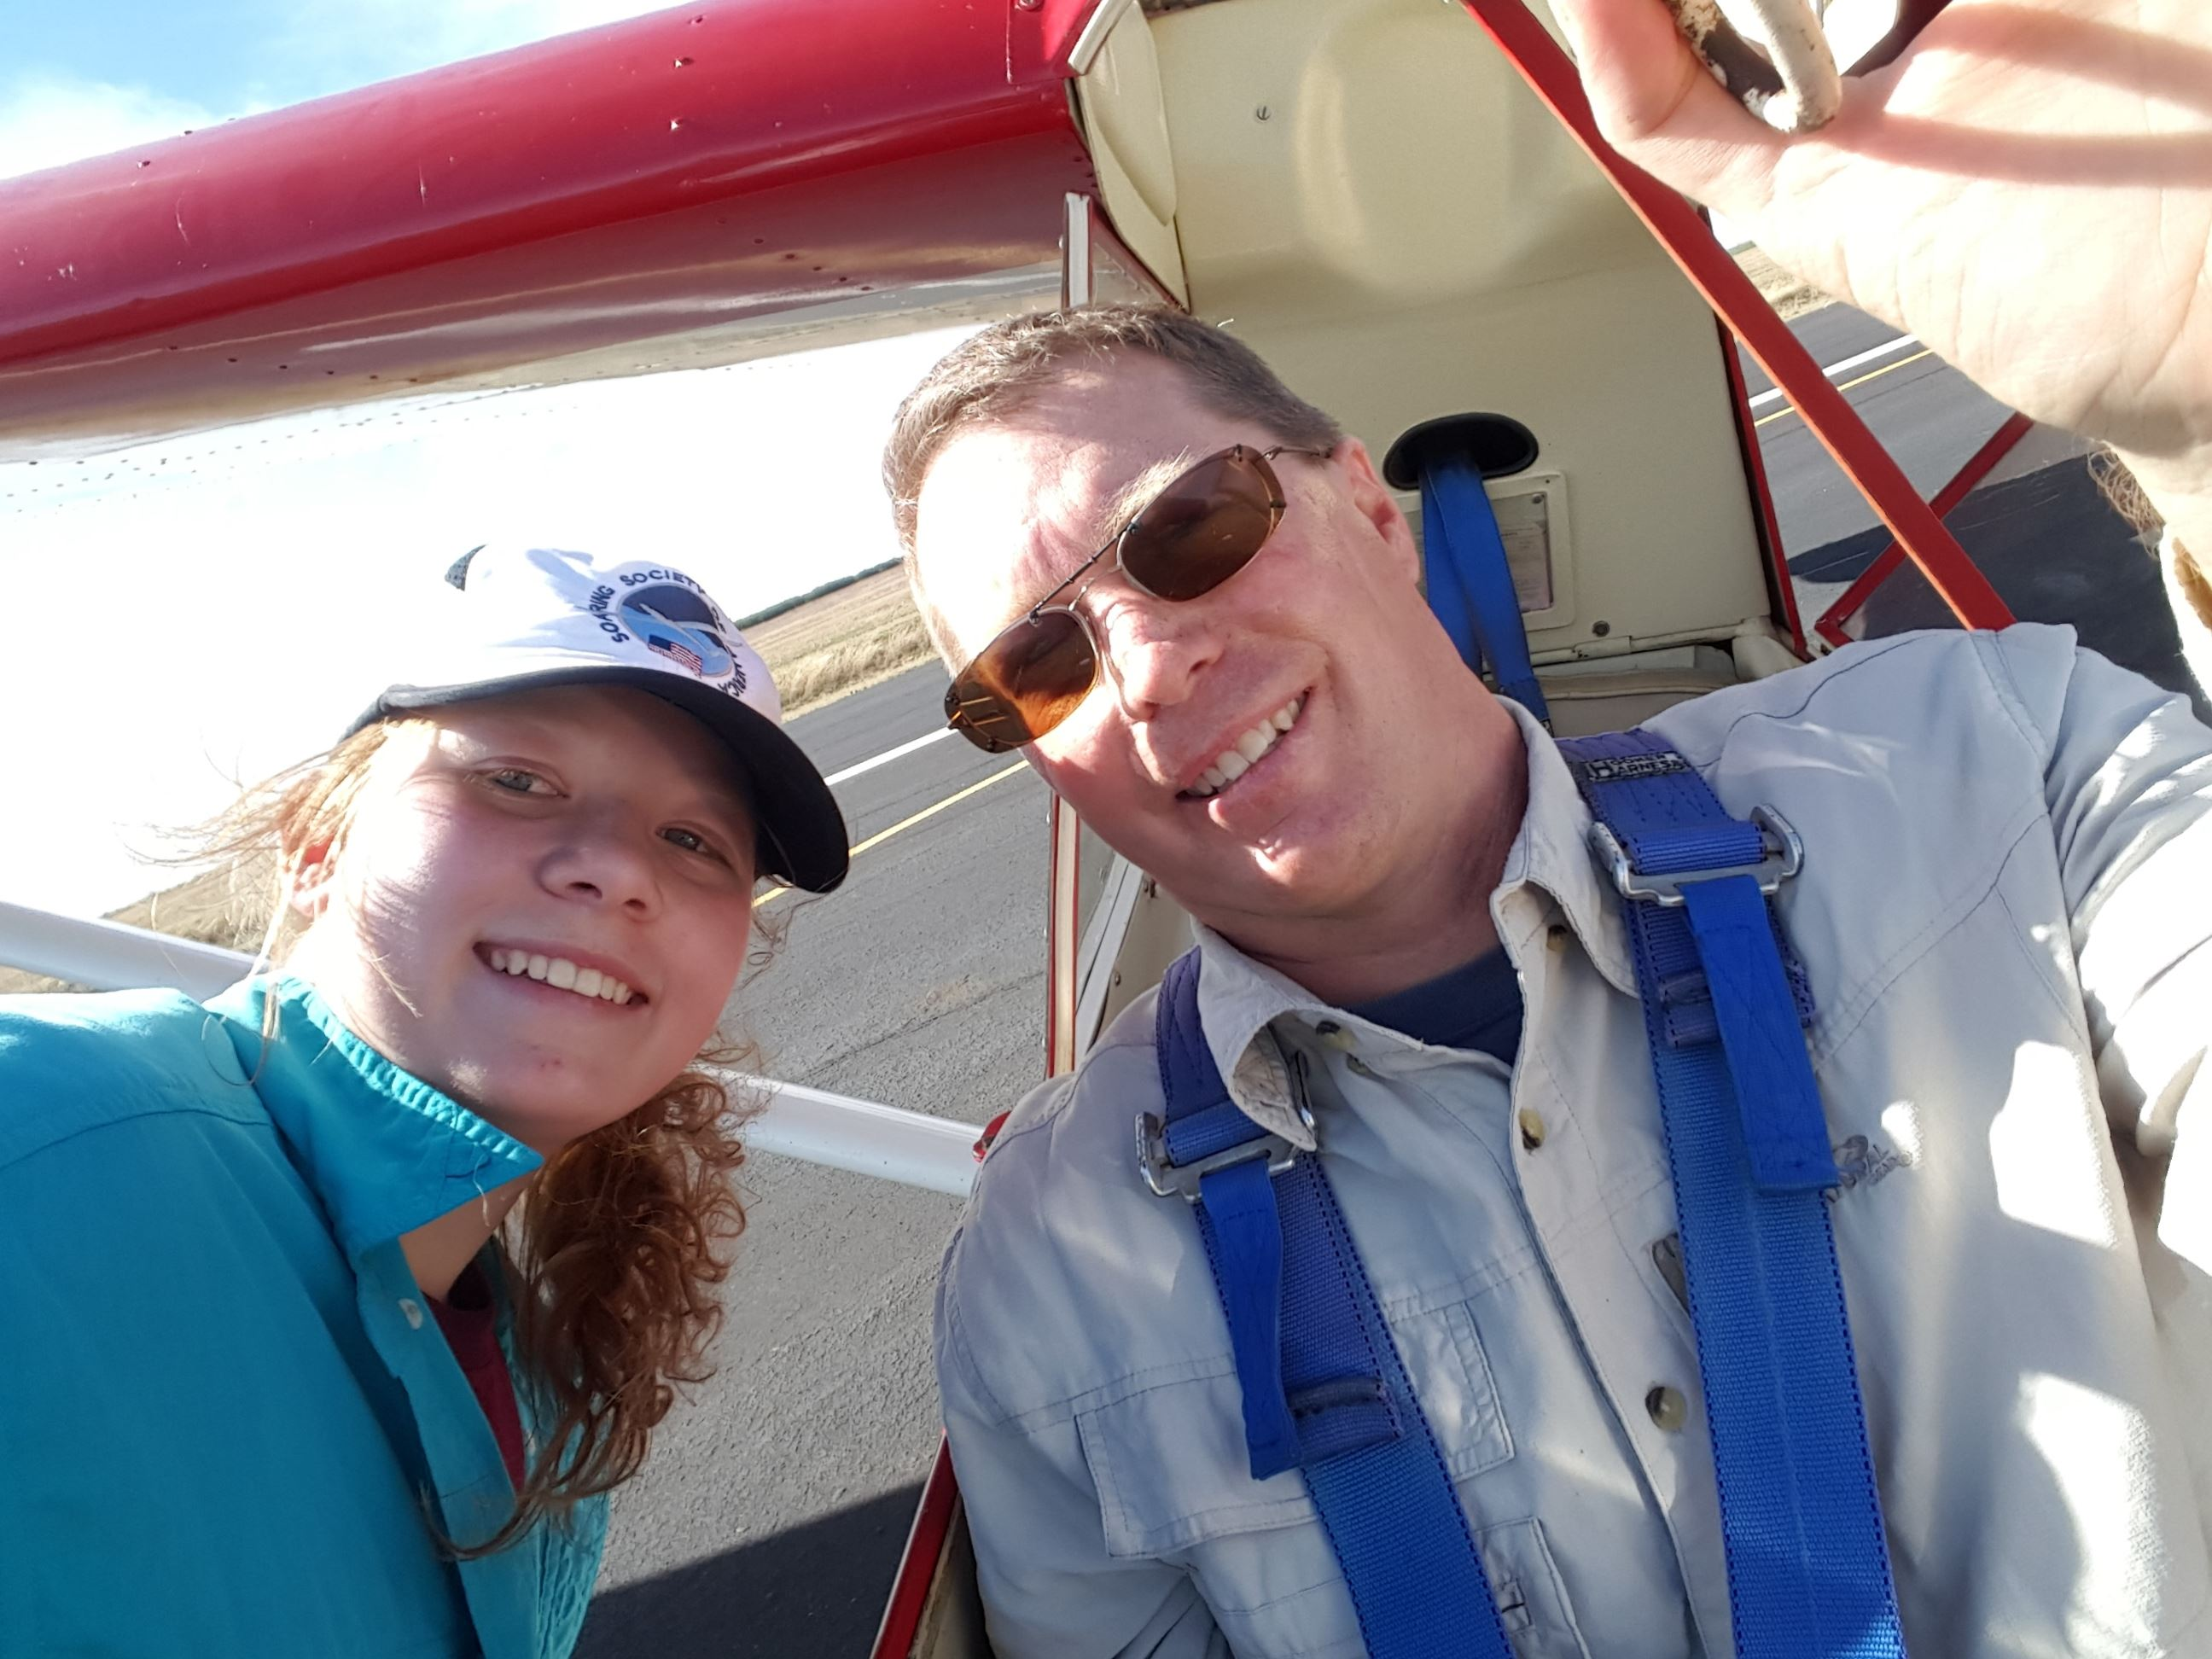 Selfie of man inside a glider with girl standing outside